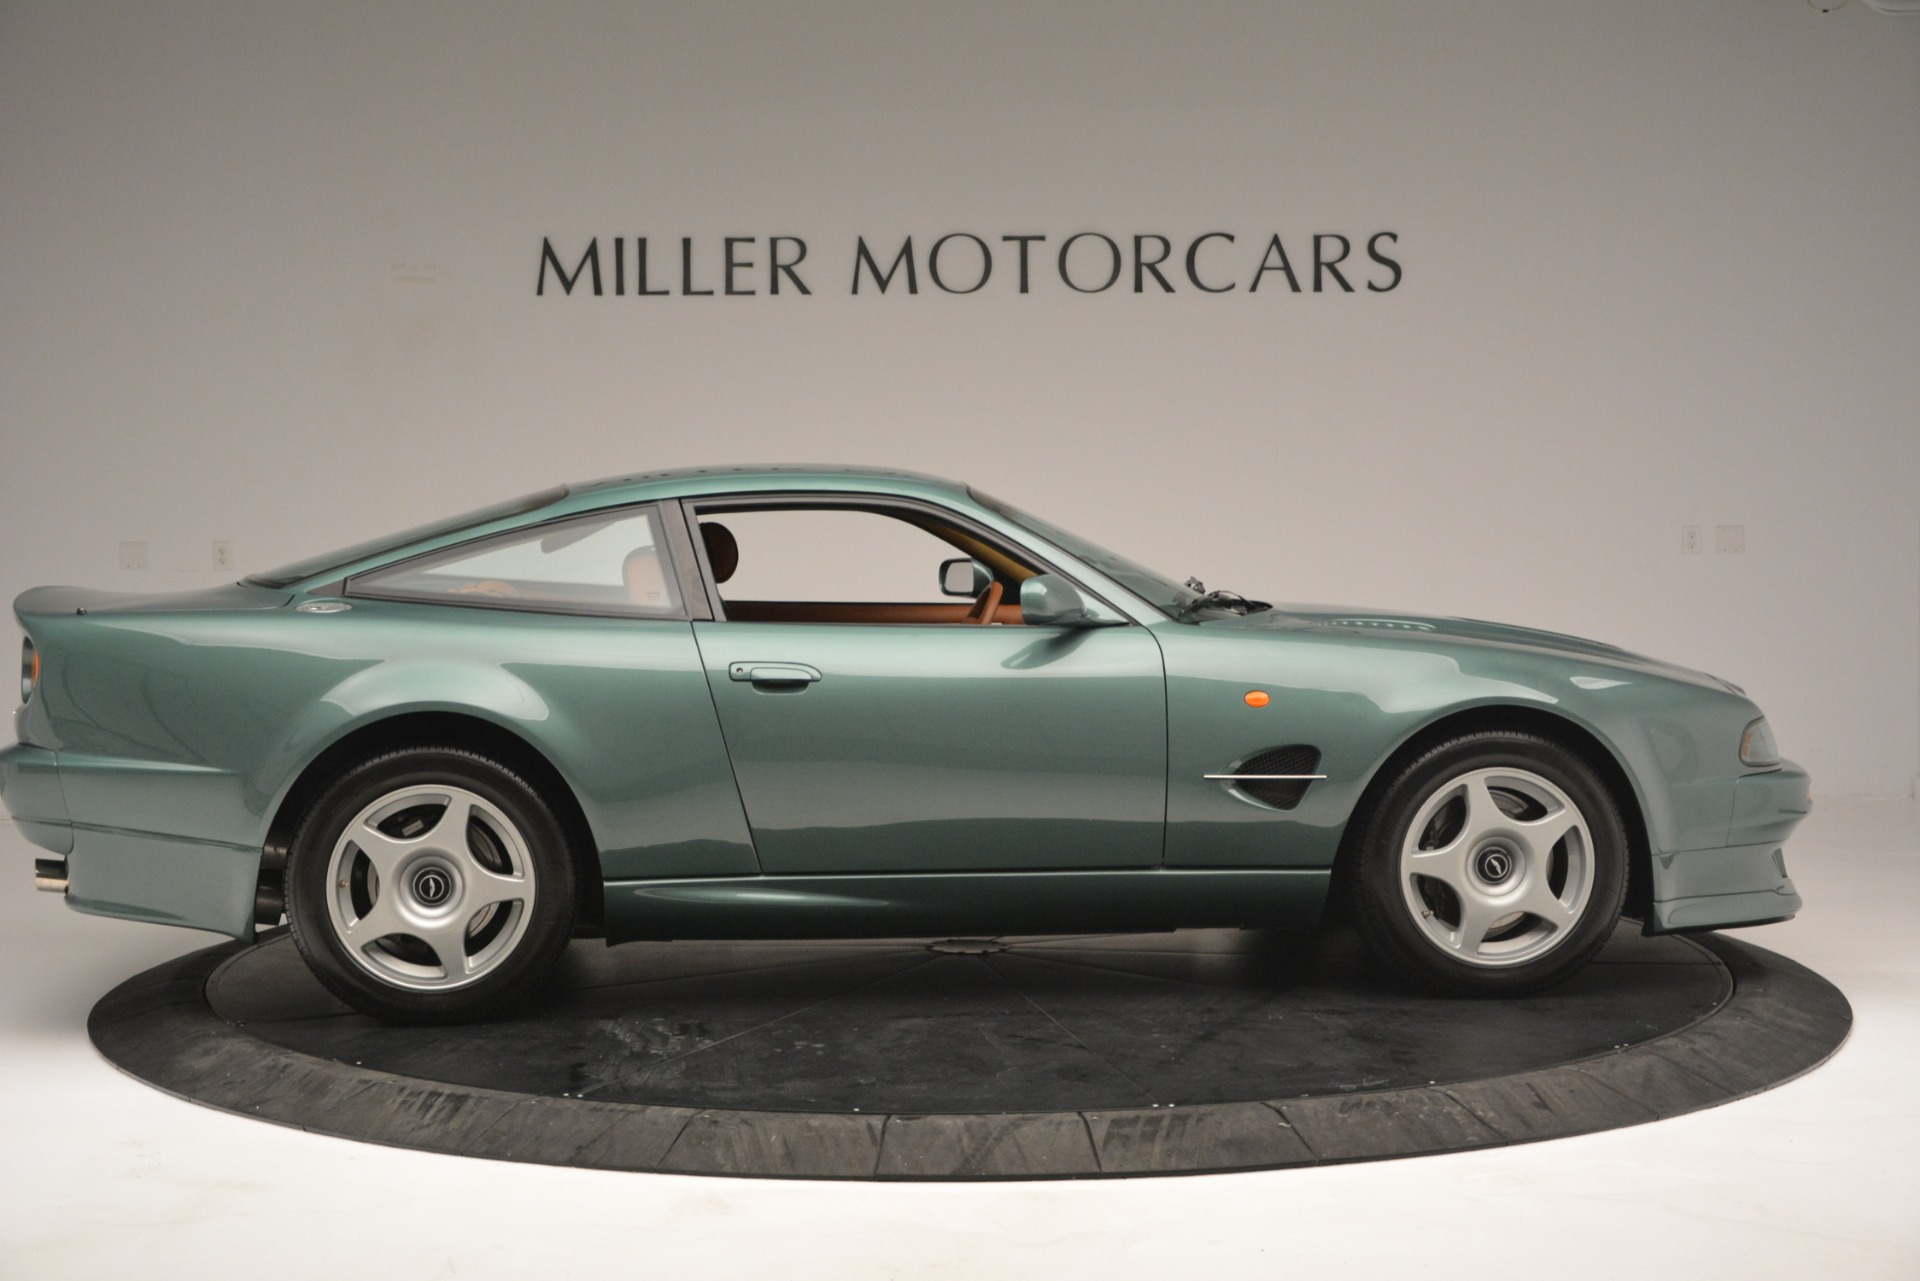 Used 1999 Aston Martin V8 Vantage Le Mans V600 Coupe For Sale In Greenwich, CT 2789_p10